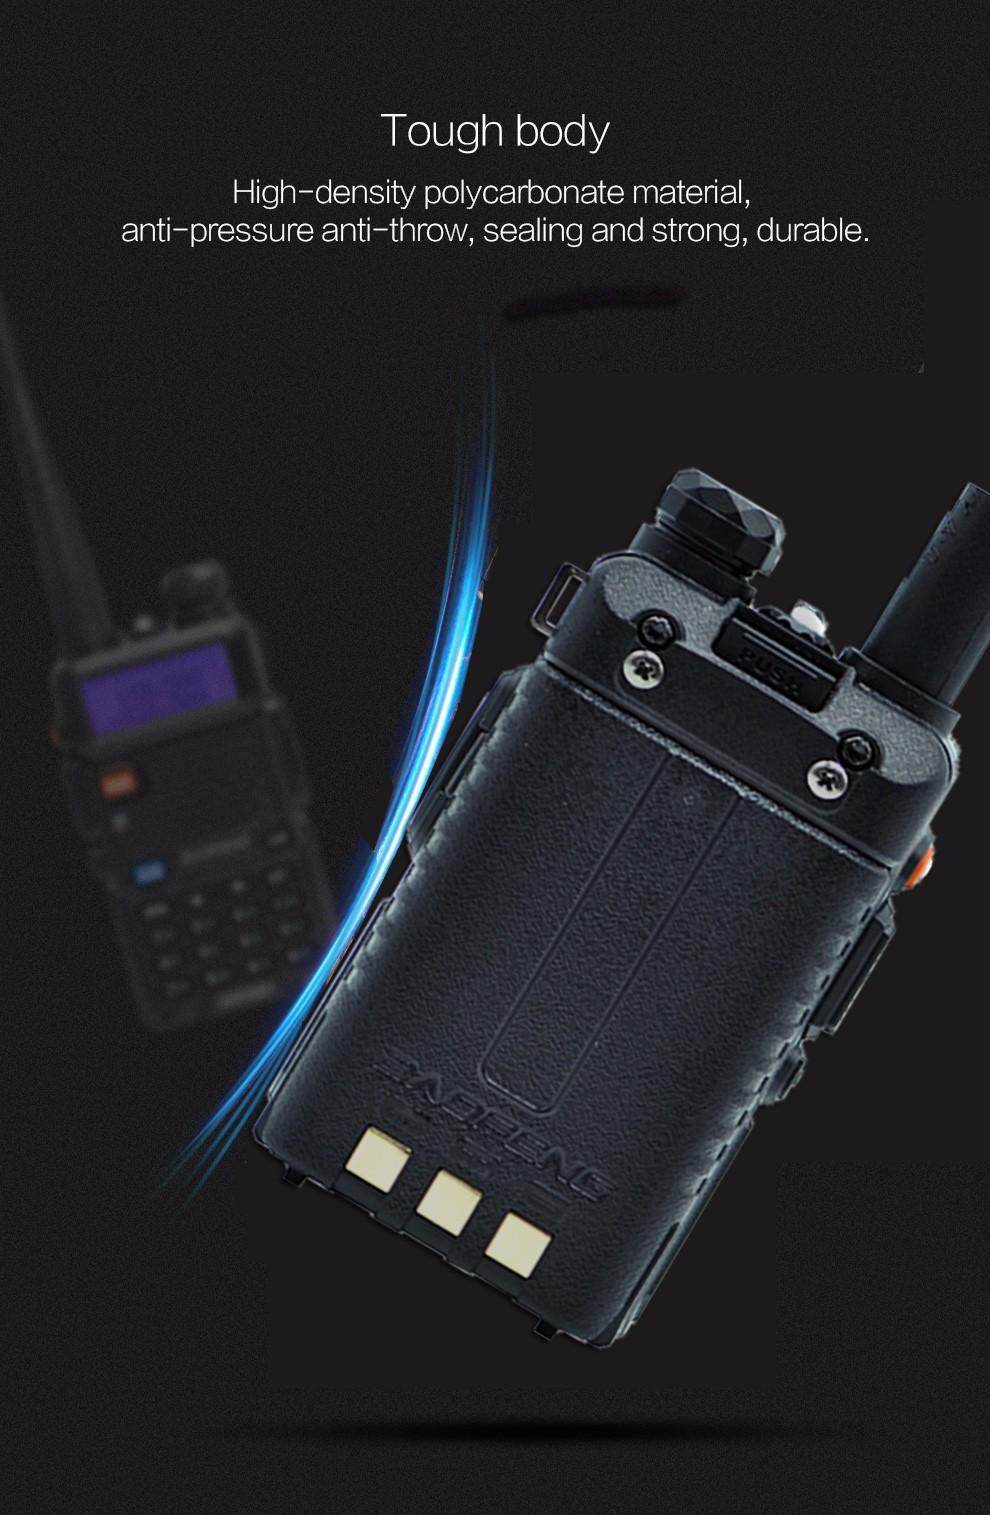 The transceiver is a micro-miniature multiband FM transceiver with  extensive receive frequency coverage, providing local-area two-way amateur  communications ...